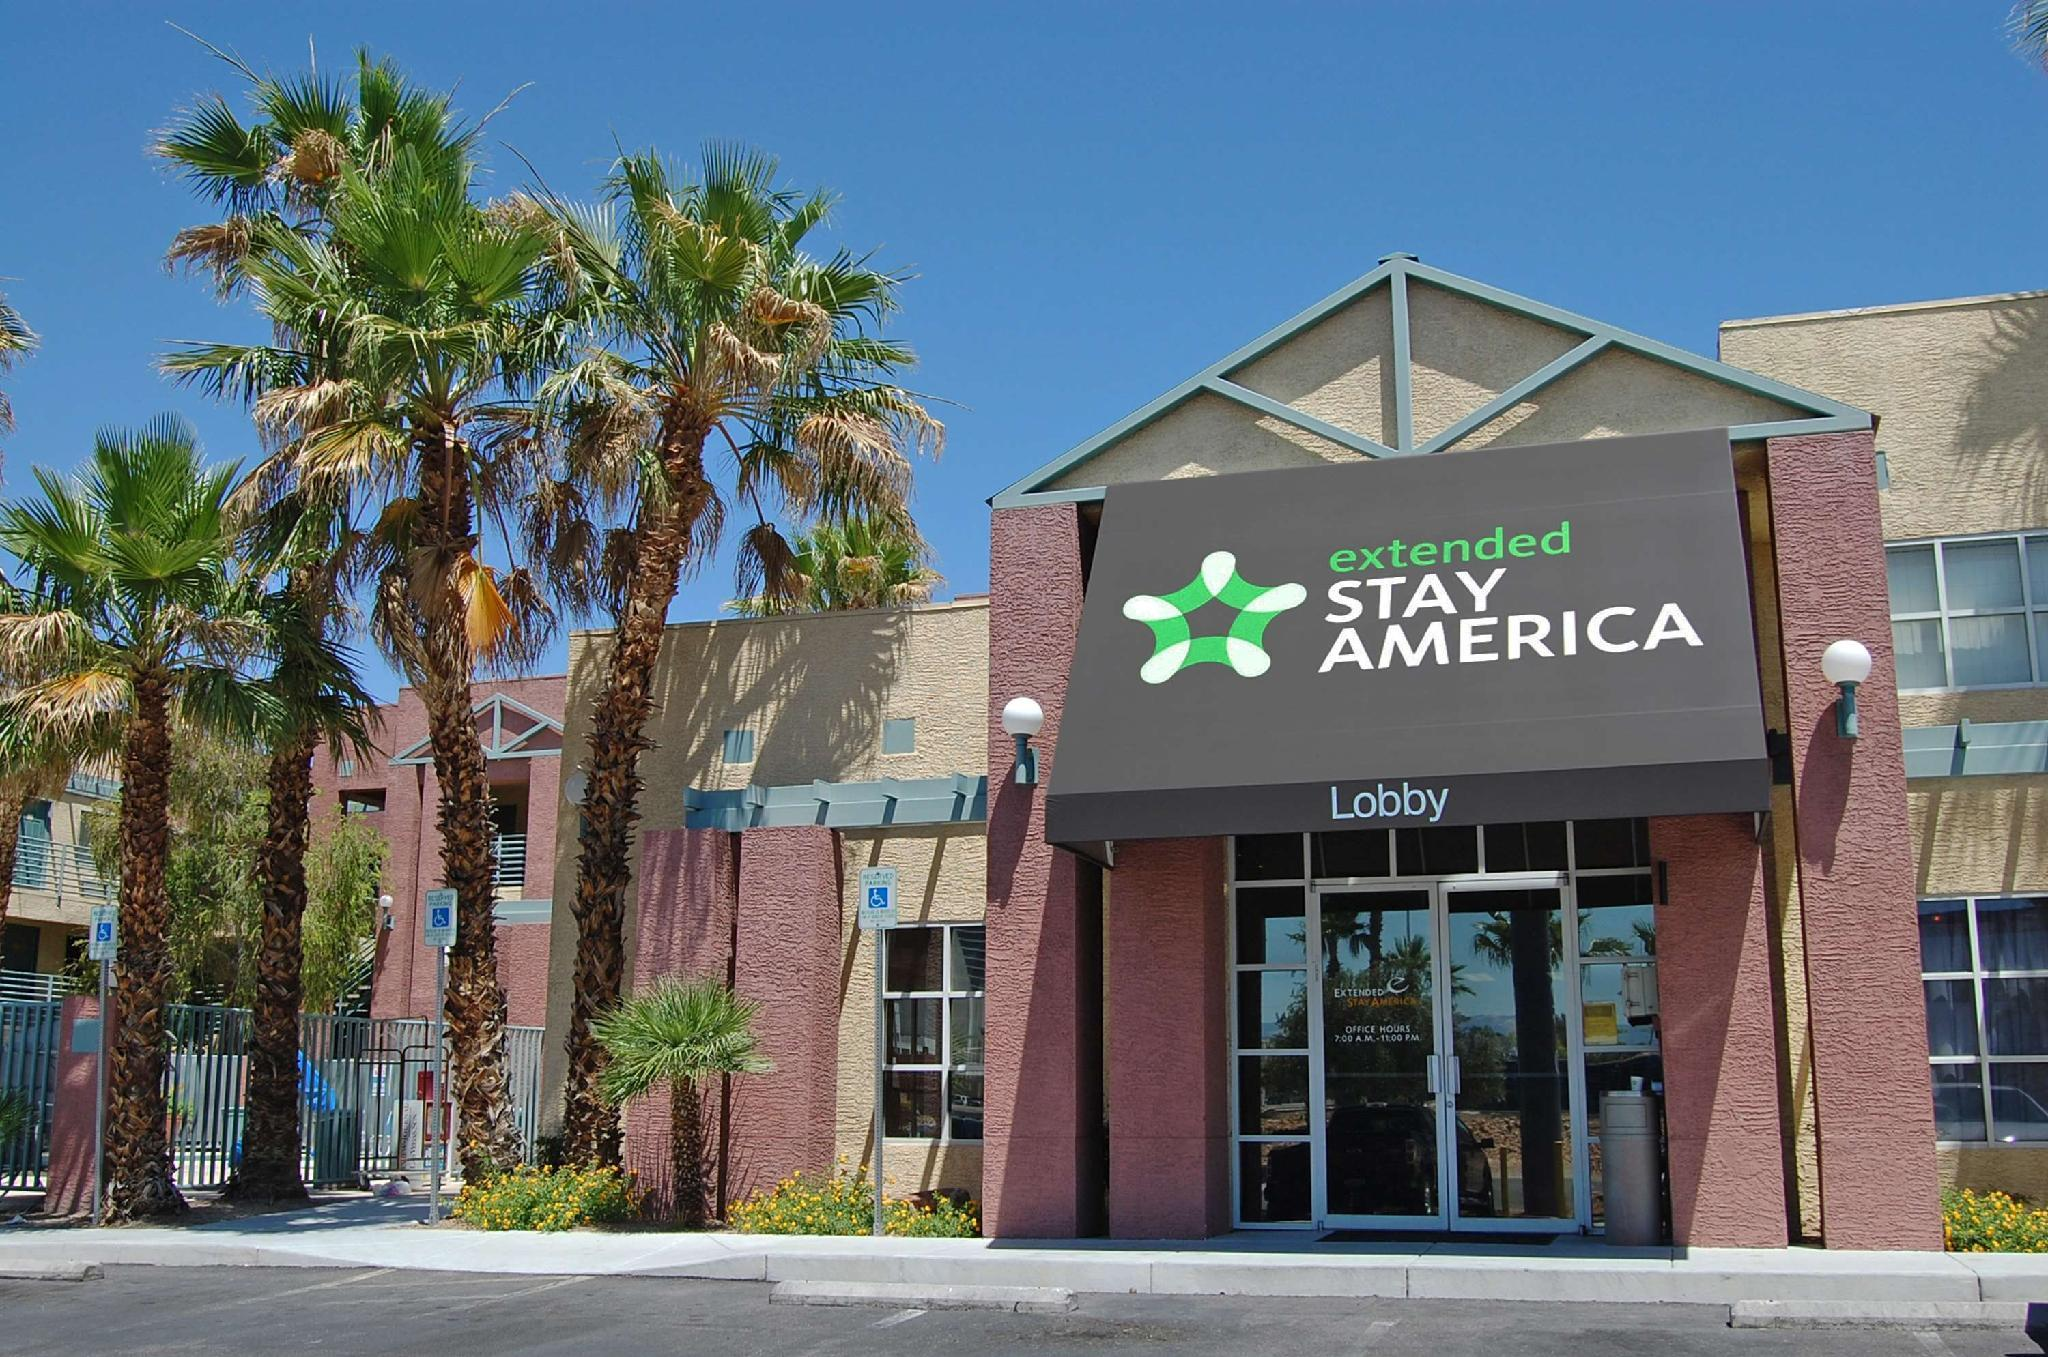 Extended Stay America Las Vegas Valley View